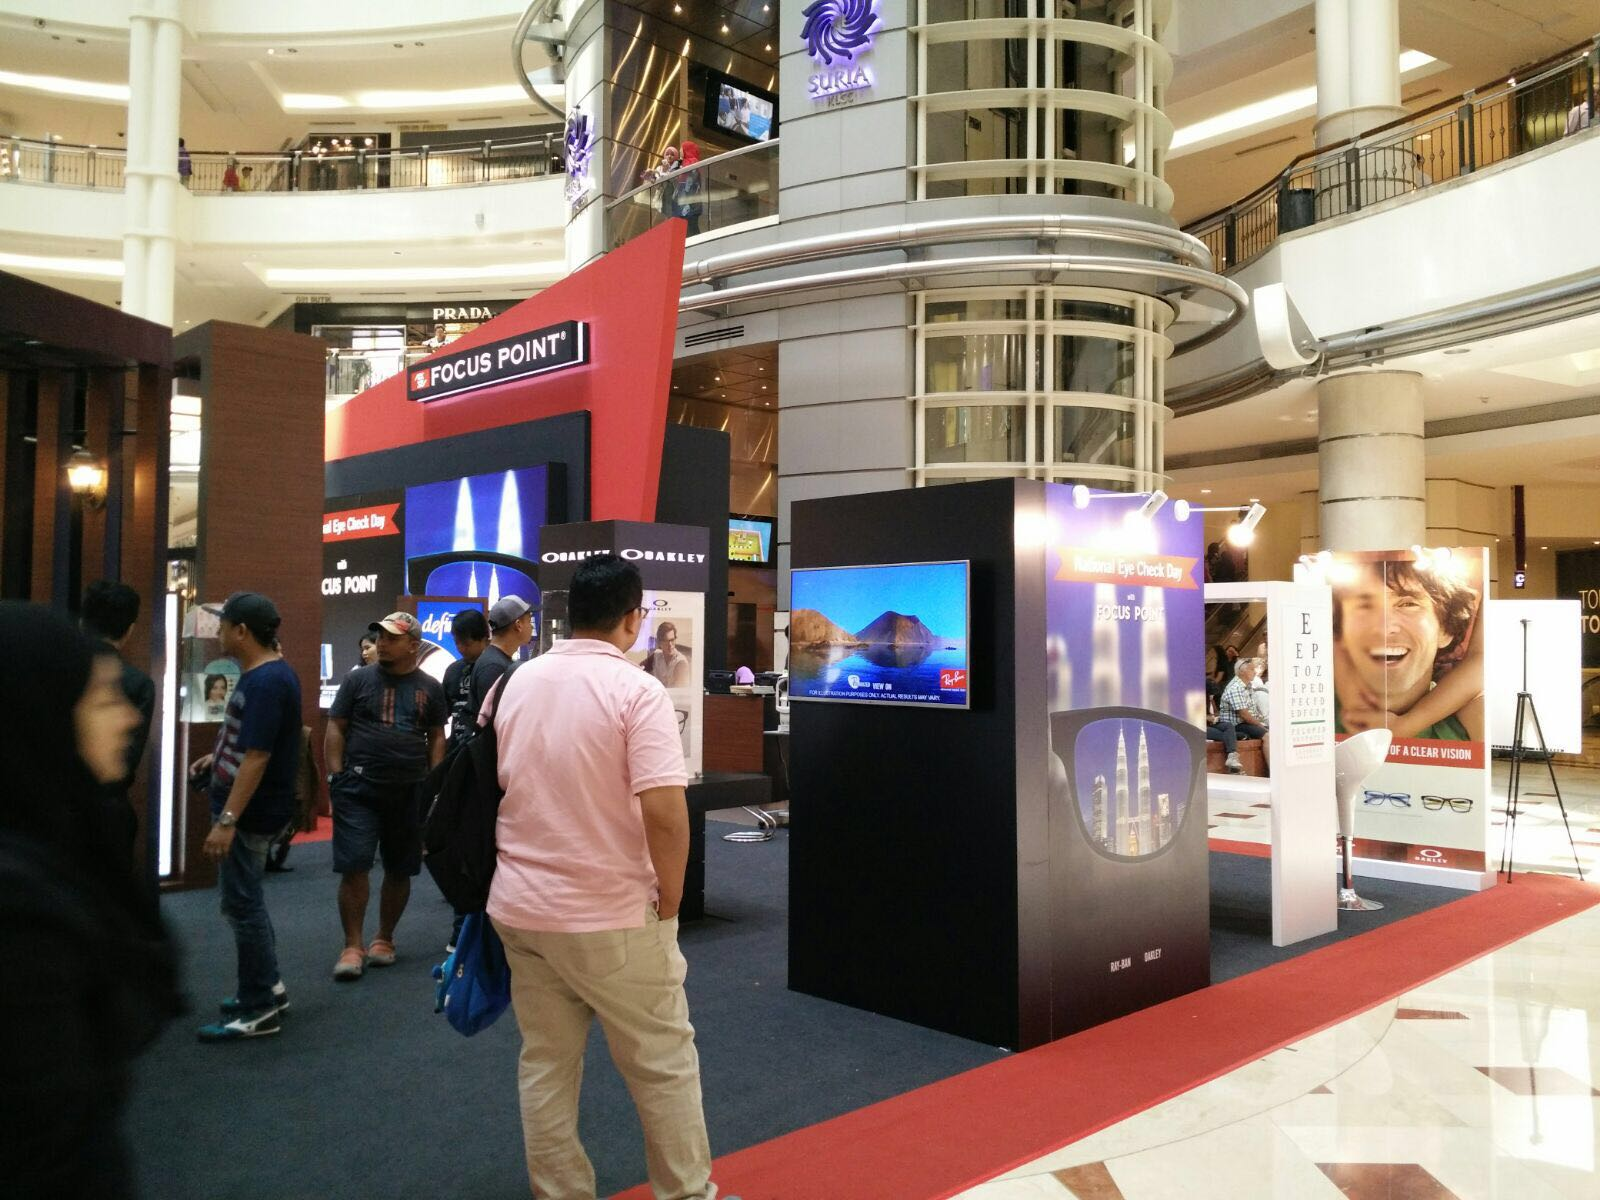 FOCUS POINT CARNIVAL – SURIA KLCC